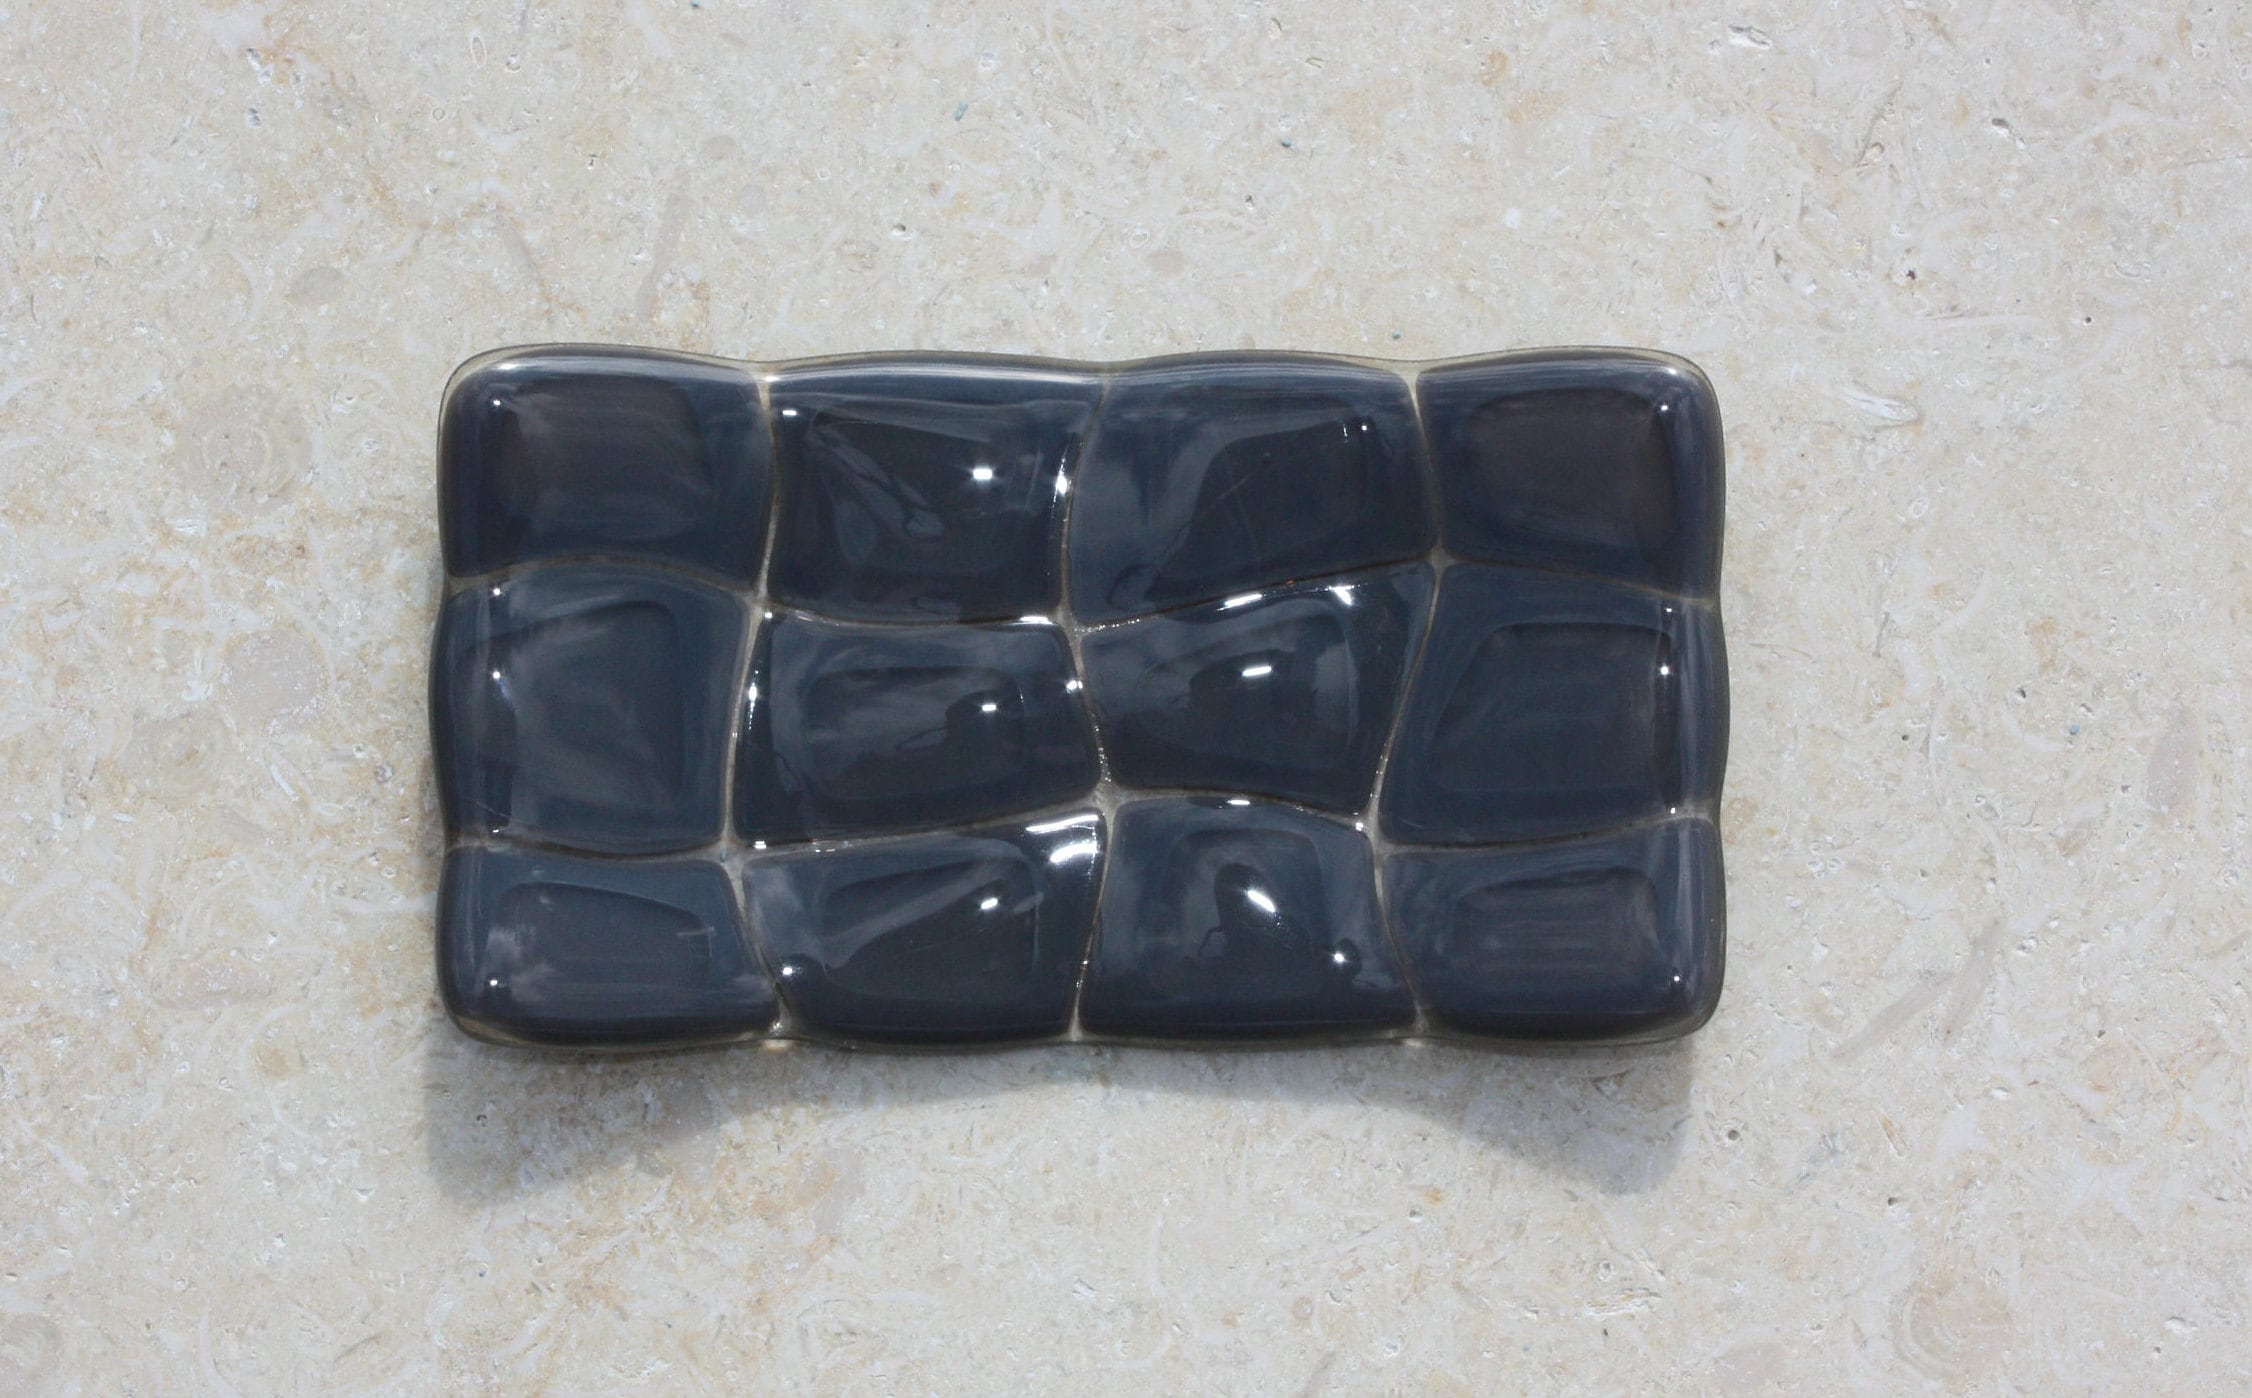 Grey turtle patterned fused glass soap dish handmade glass soapdish for kitchen or bathroom decor